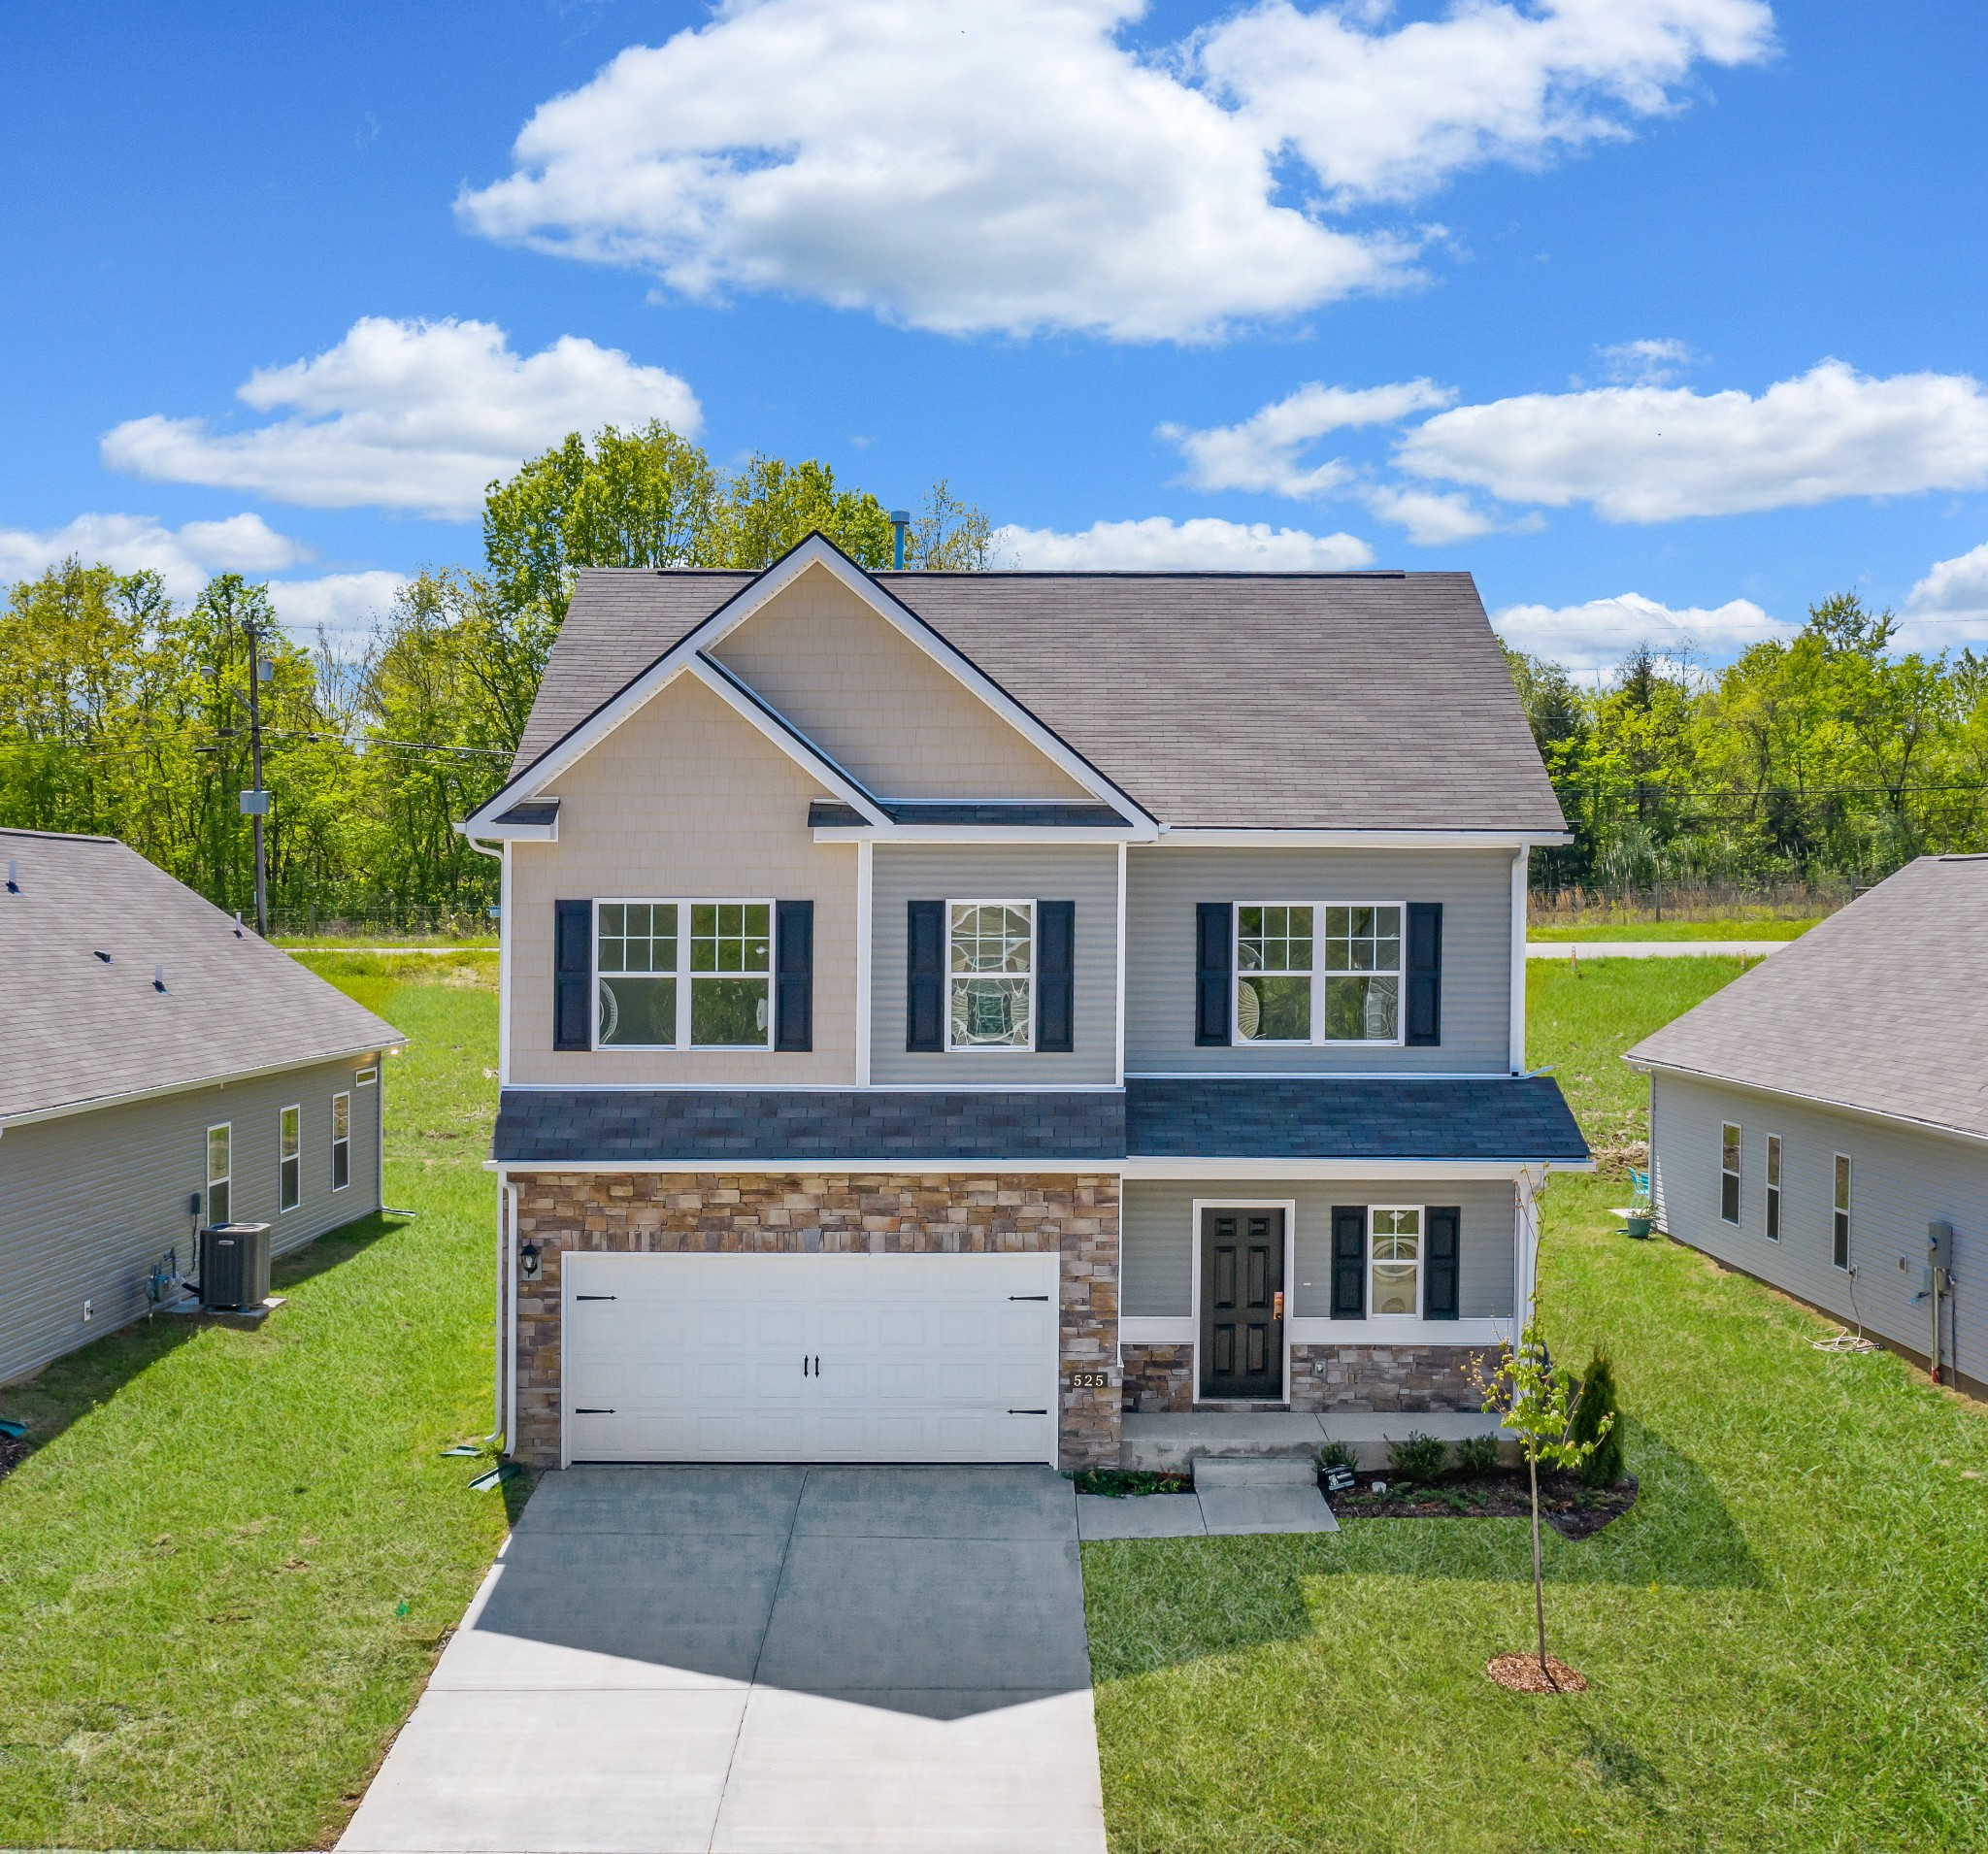 7 Burchell Lane (Lot 7) 38401 - One of Columbia Homes for Sale